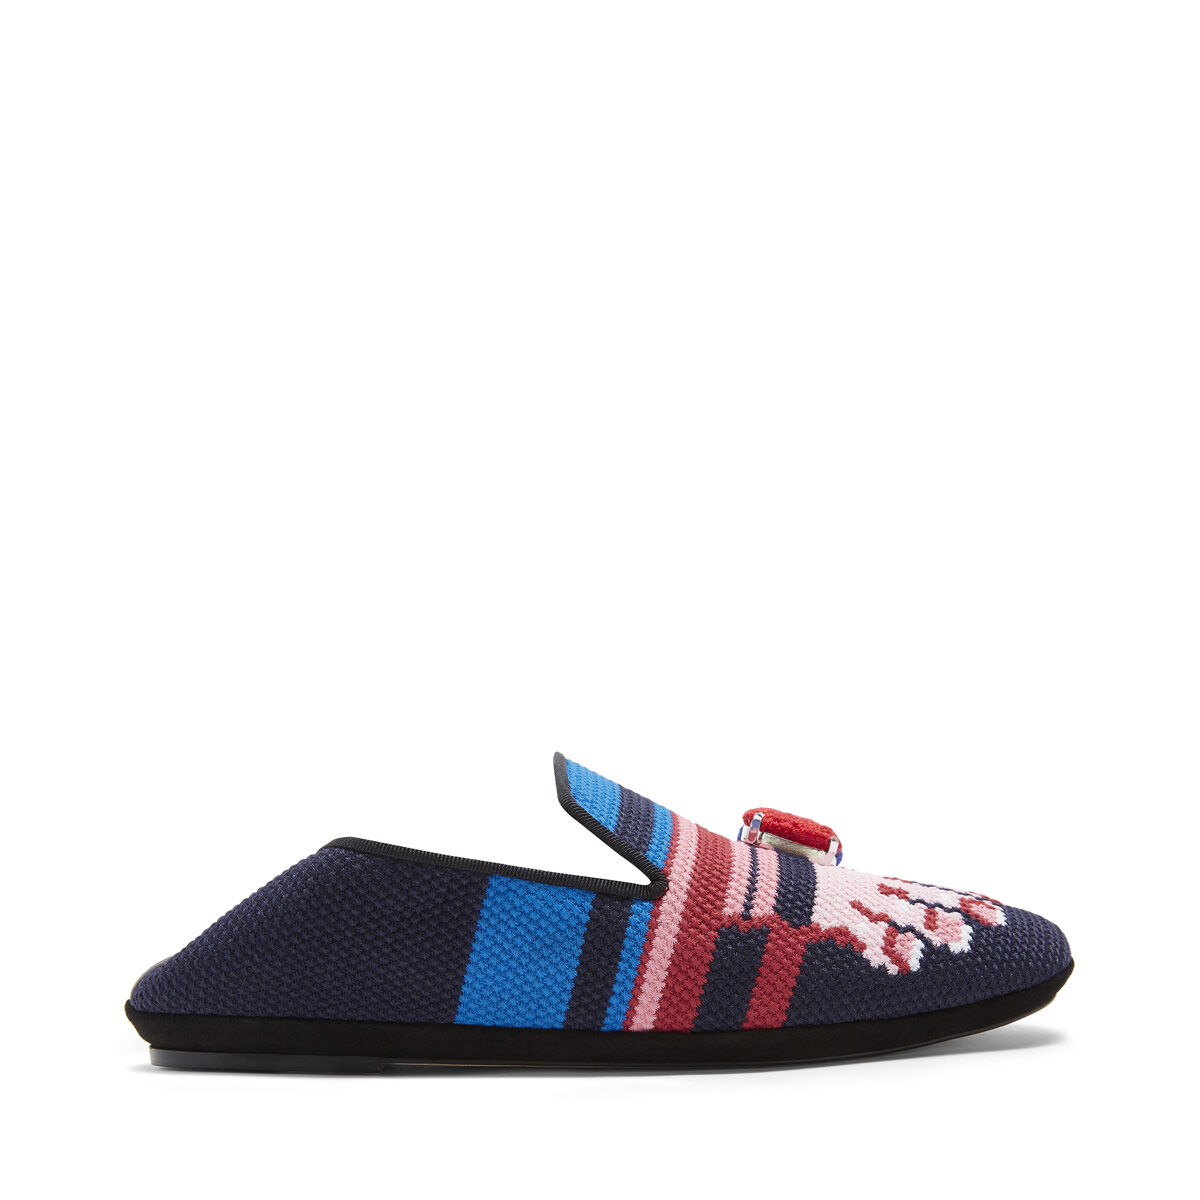 LOEWE Embroidered Slipper Toes Pink/Navy Blue all